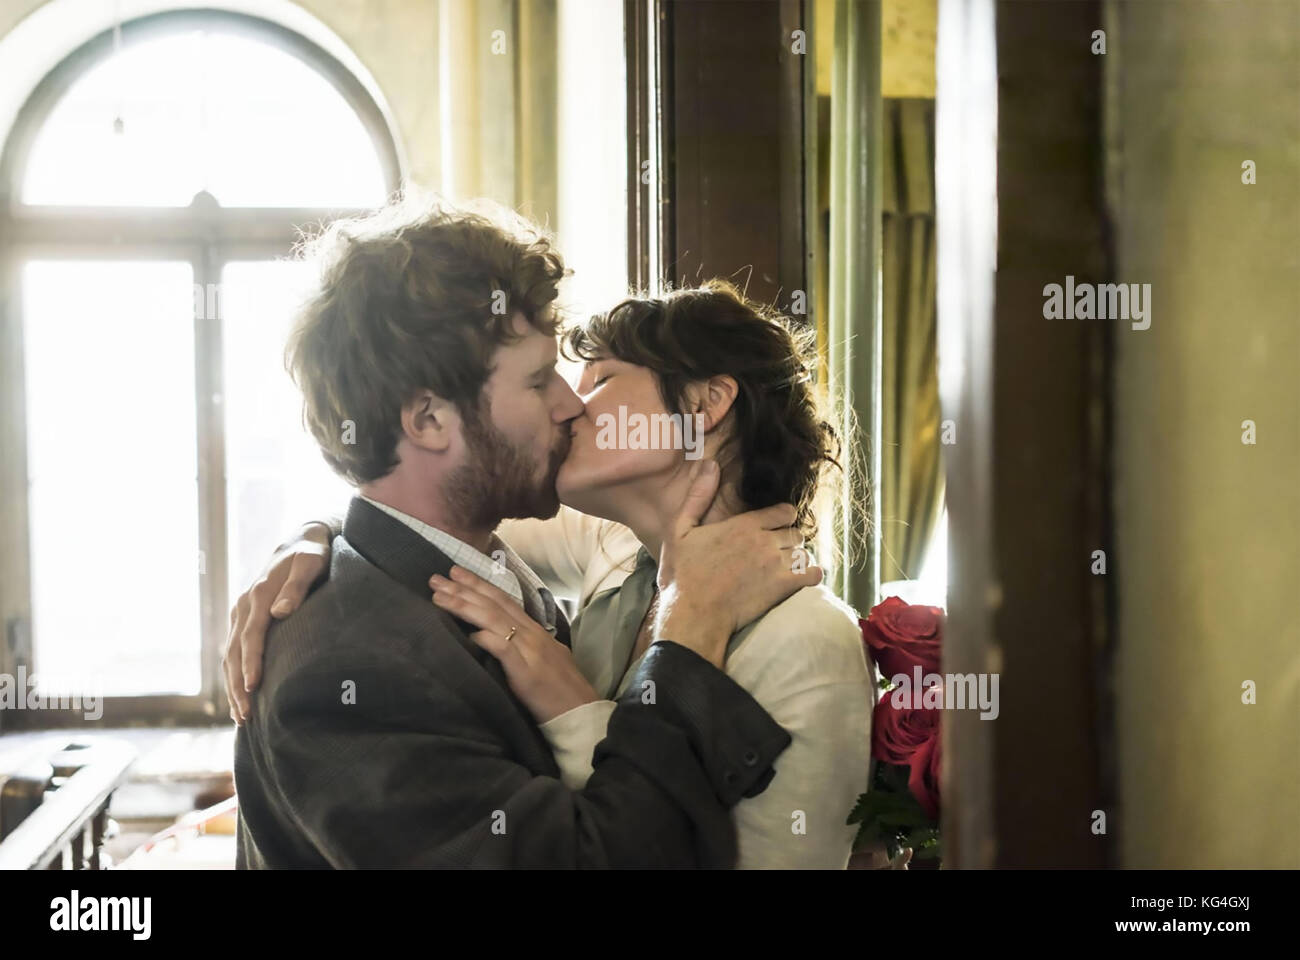 THE HISTORY OF LOVE 2016   A 2.4.7 Films production with Gemma Arterton and Mark Rendall - Stock Image